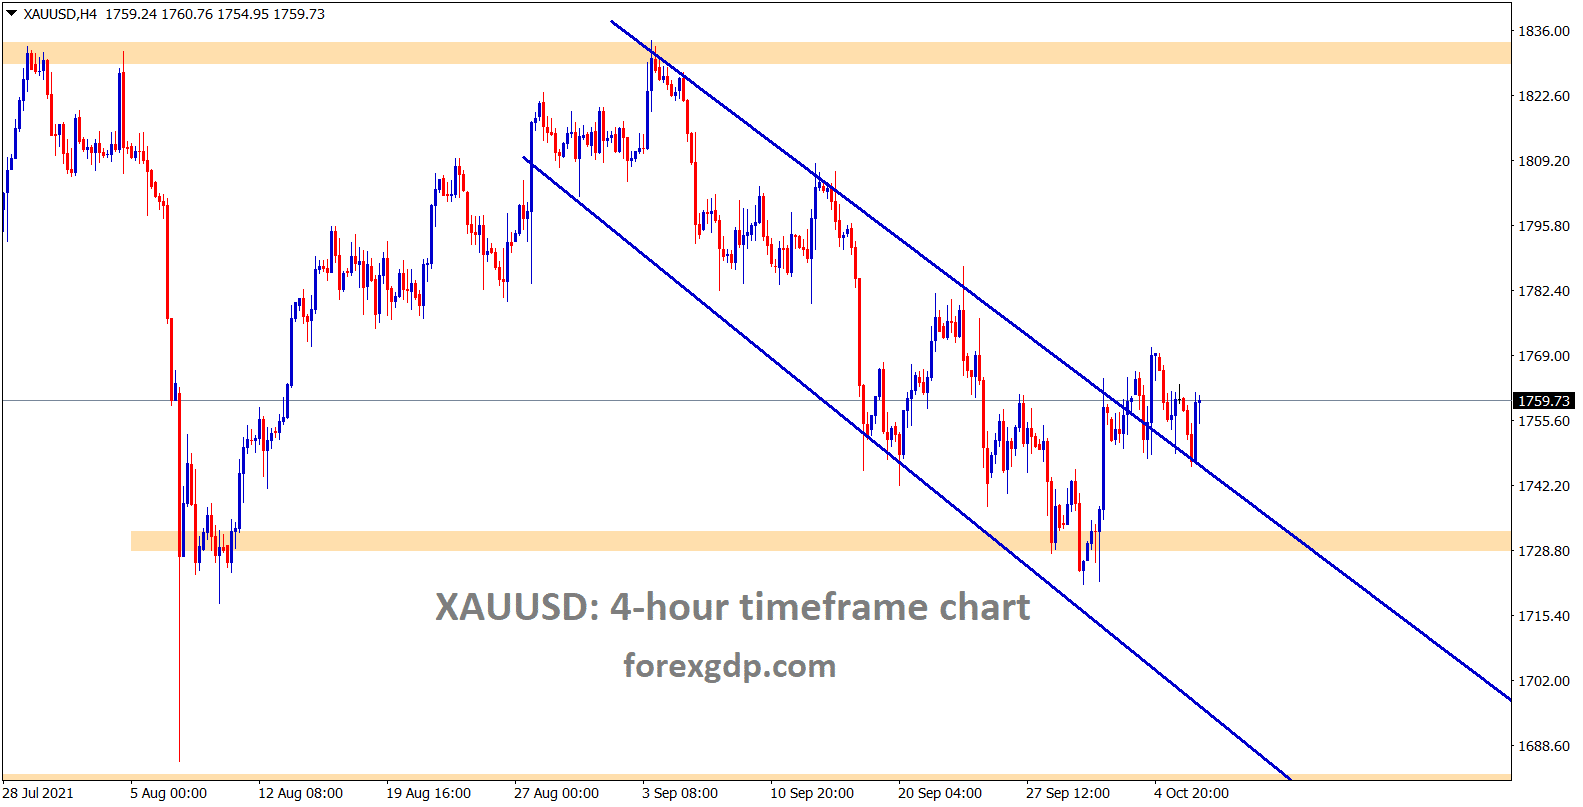 Gold is consolidating at the lower high area of the descending channel for a long time wait for the strong momentum to pick the gold direction.